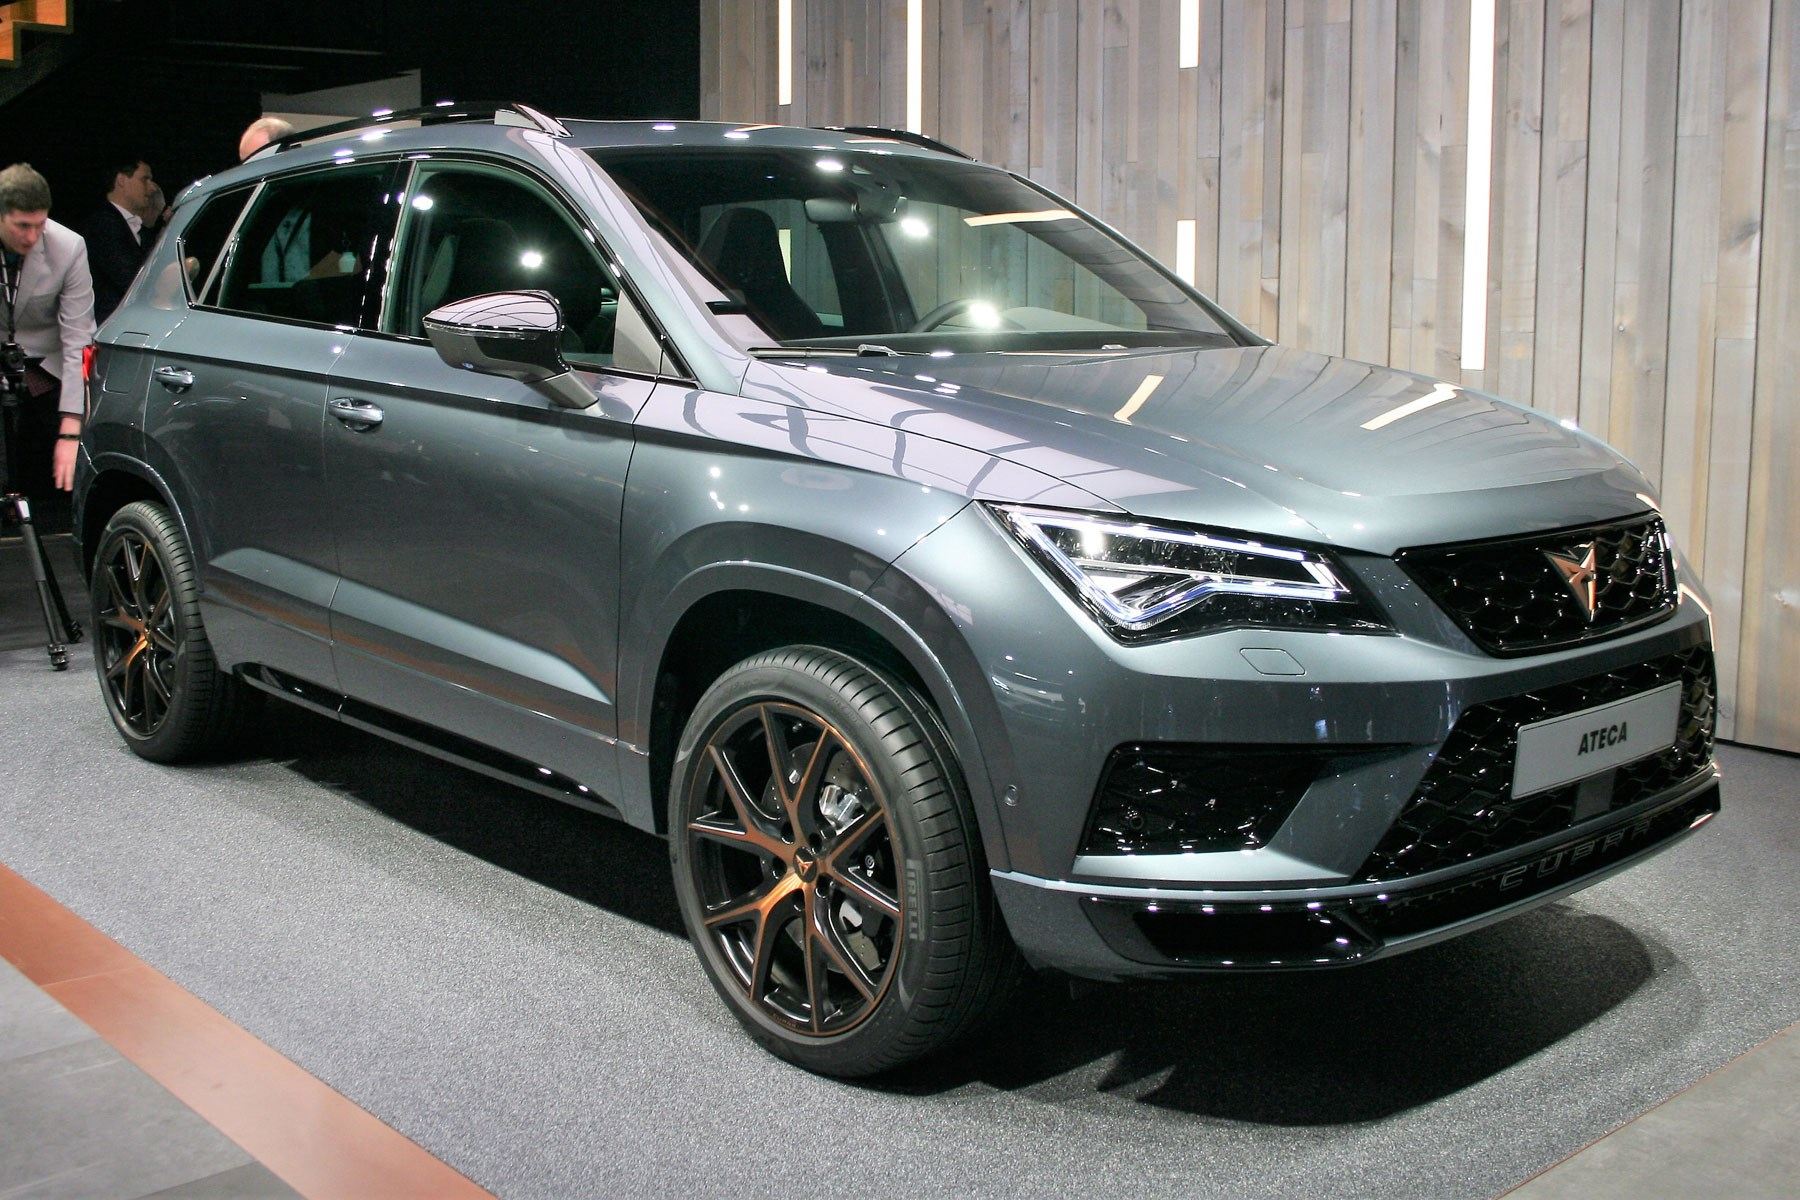 cupra ateca suv news photos prices specs on sale date. Black Bedroom Furniture Sets. Home Design Ideas